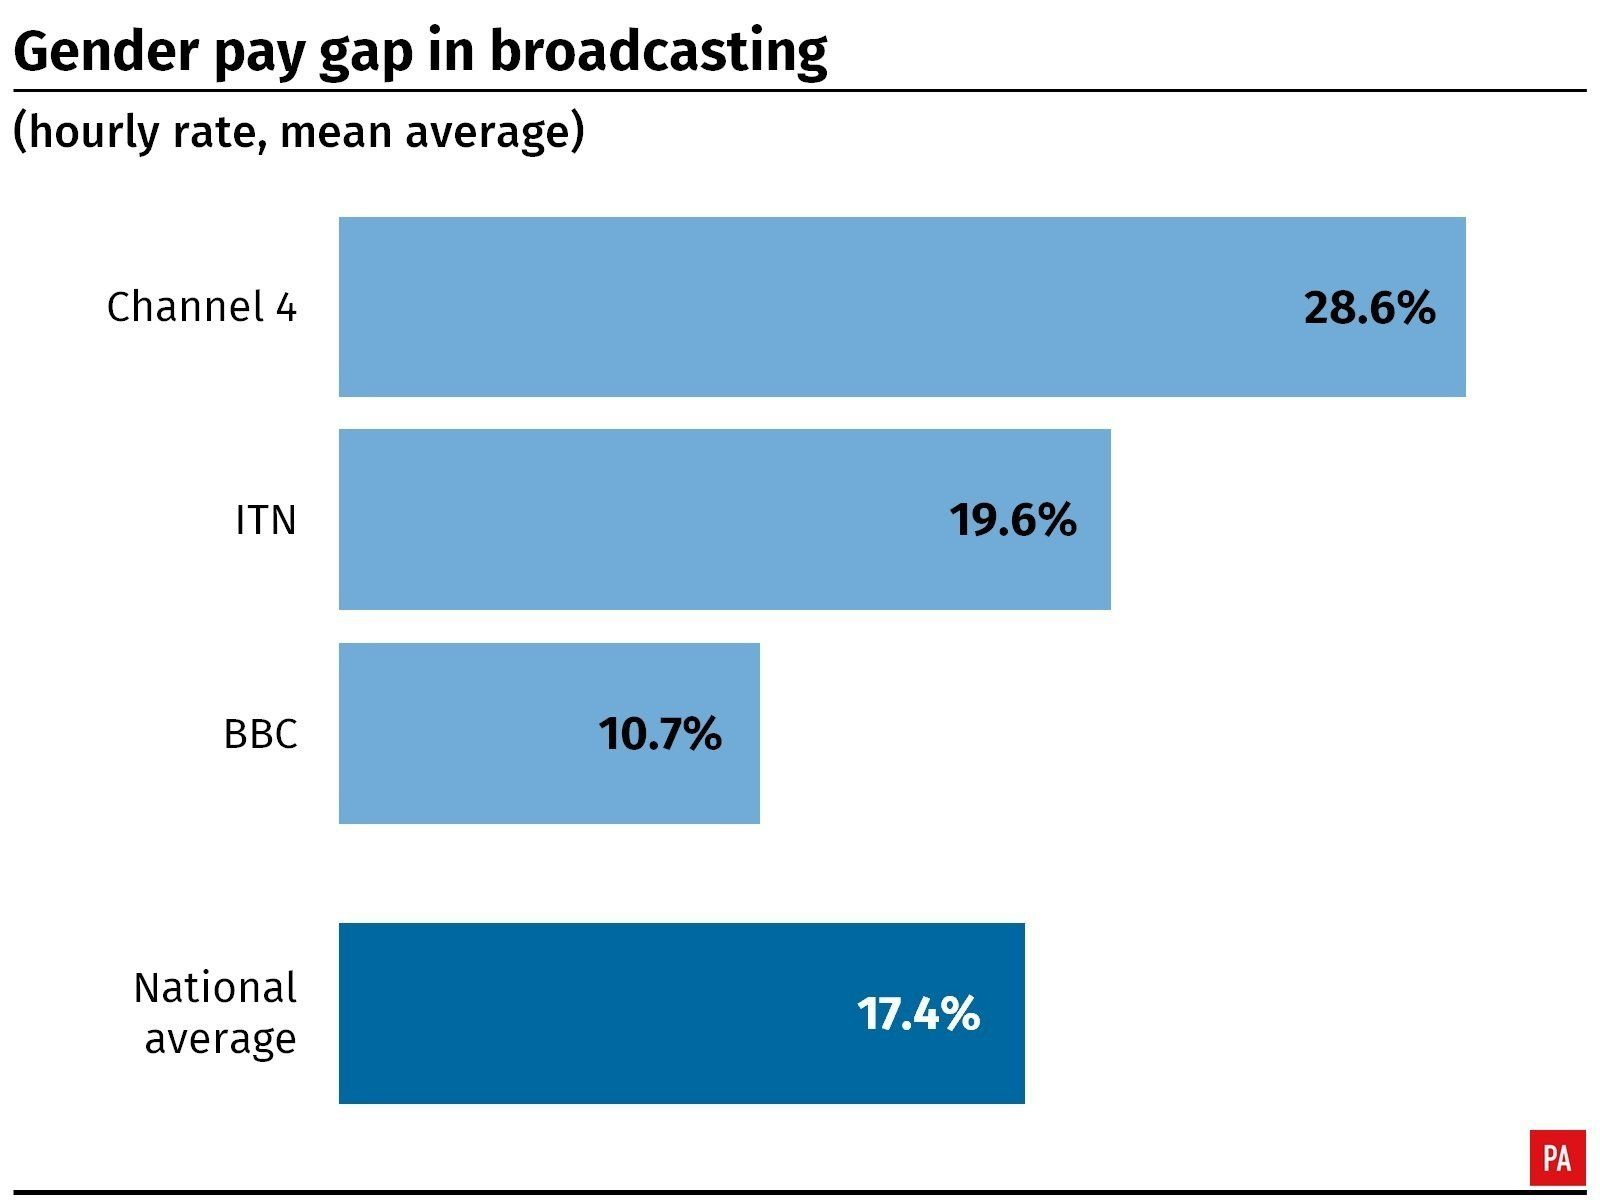 Channel 4 reveals gender pay gap to be 28